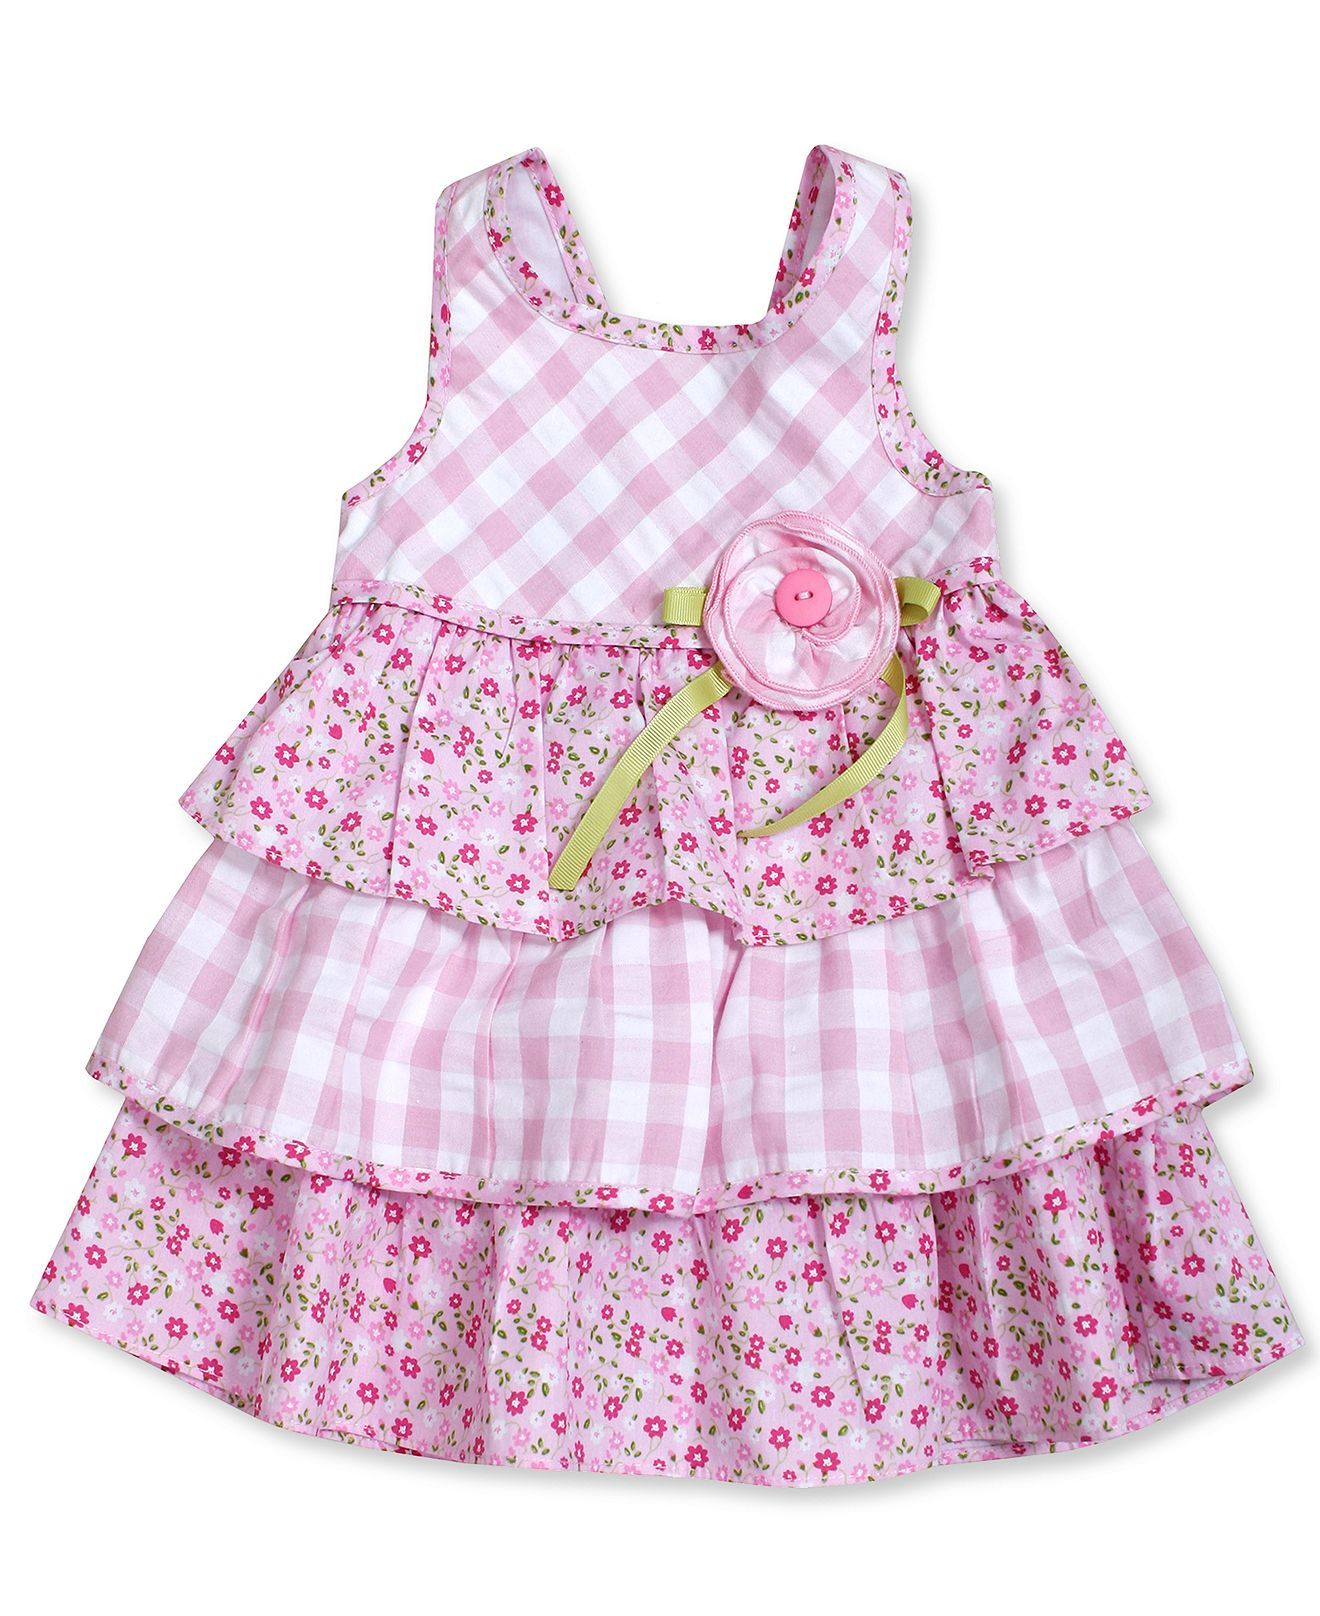 Bonnie Baby Baby Girls\' Sleeveless Sundress - Kids - Macy\'s | Moda ...